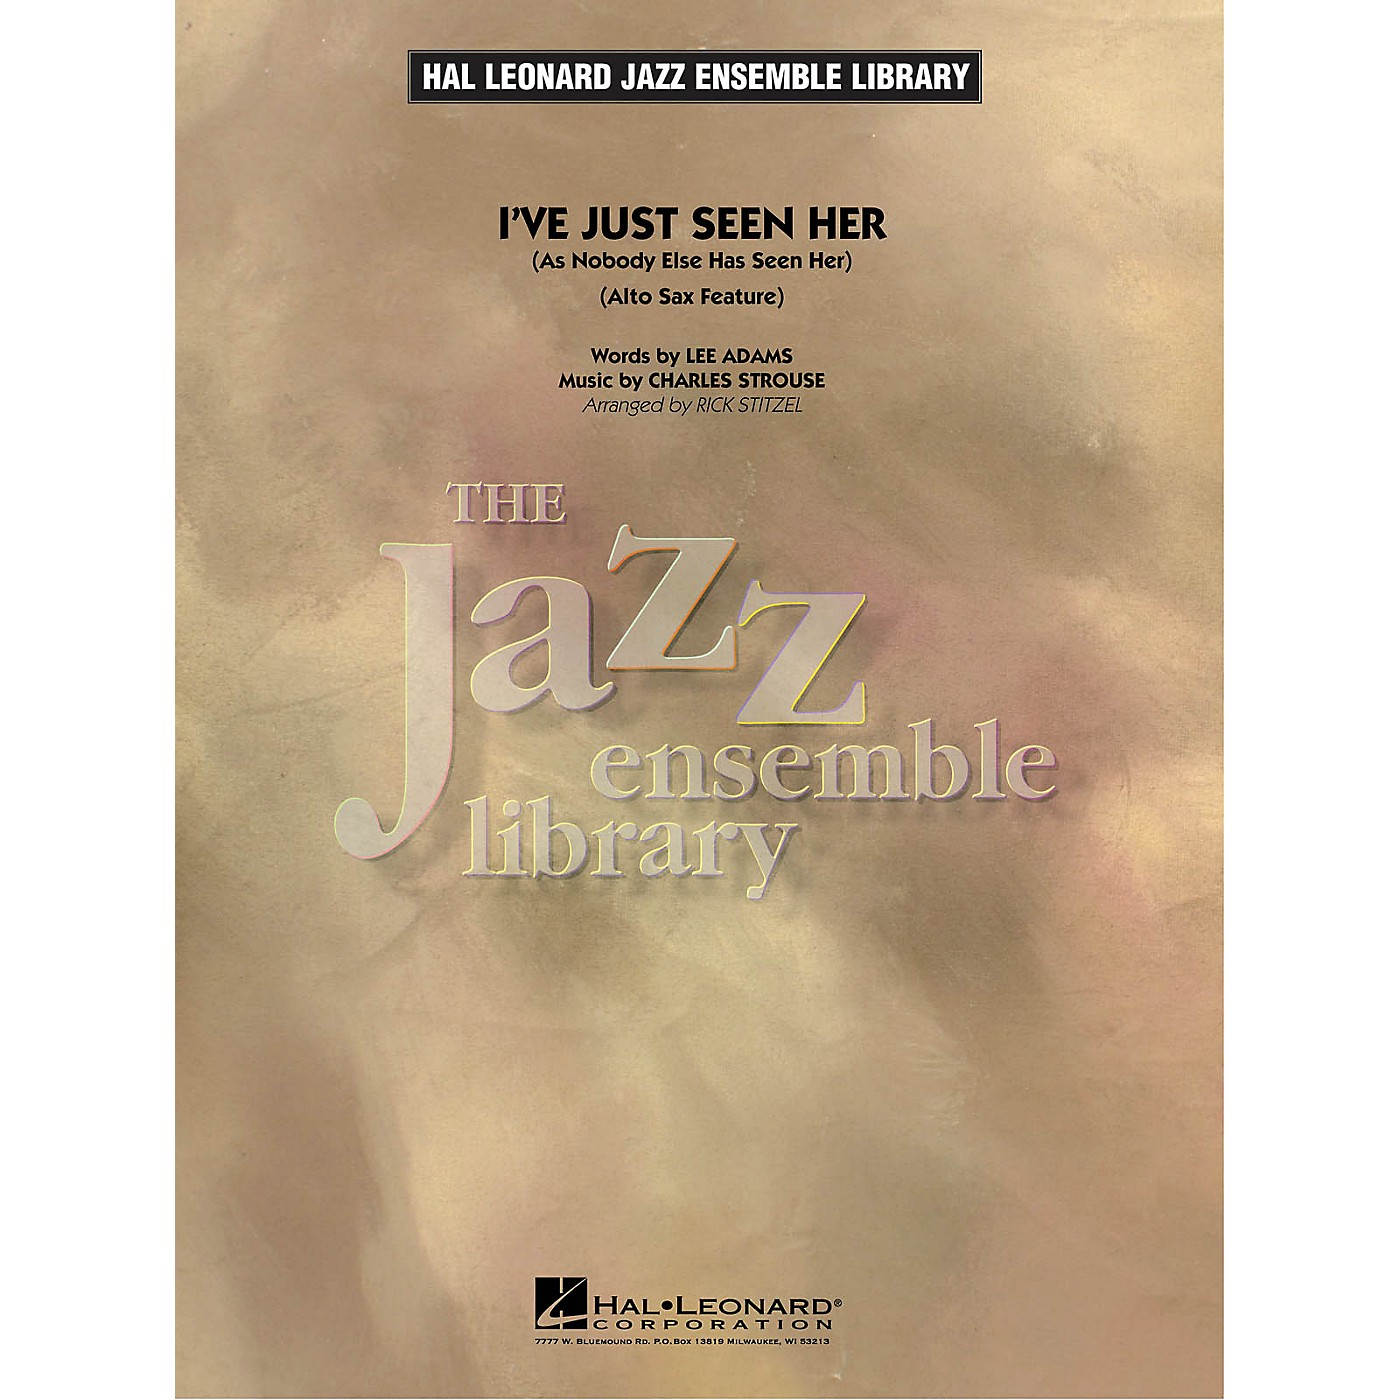 Hal Leonard I've Just Seen Her (Alto Sax Feature) Jazz Band Level 4 Arranged by Rick Stitzel thumbnail